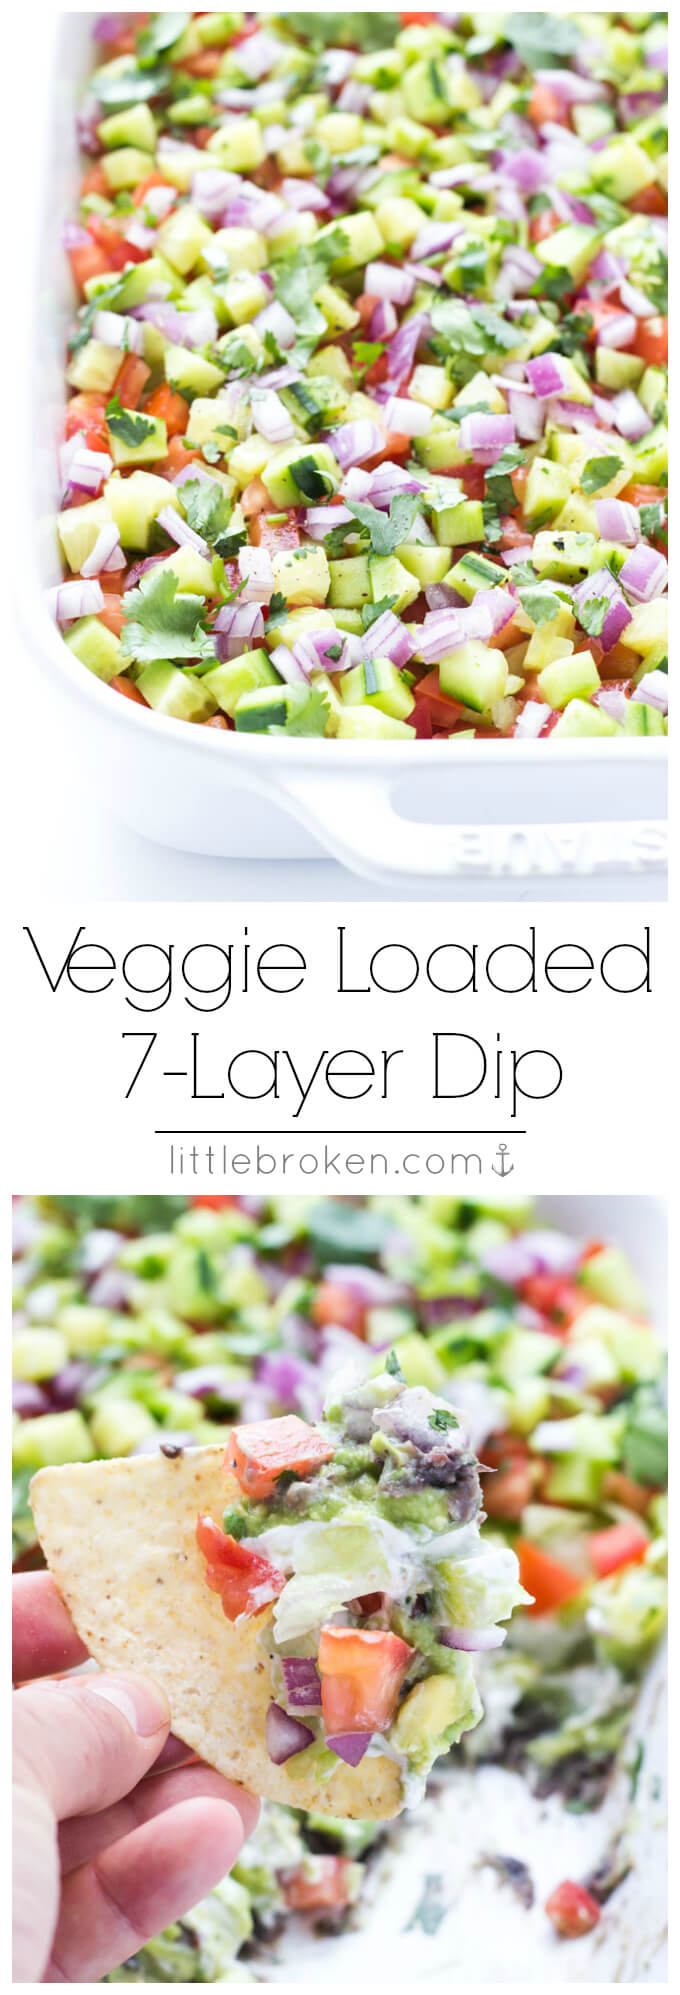 Healthy 7-layer appetizer without any processed canned stuff. Just simple, real food.   littlebroken.com @littlebroken